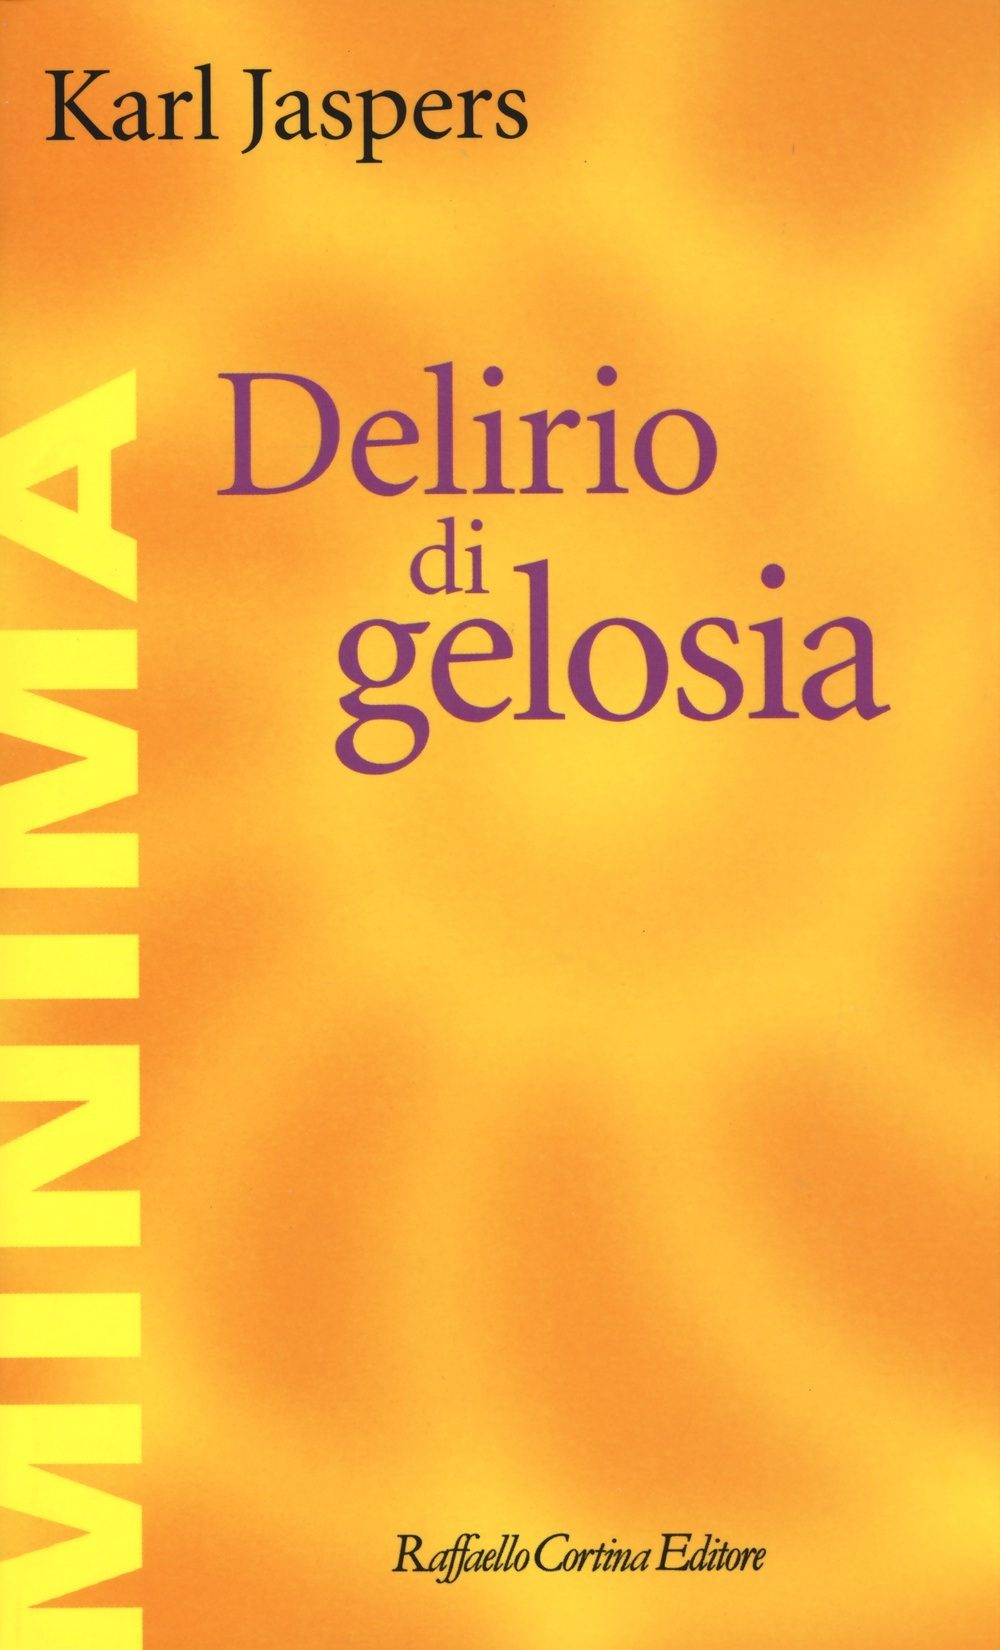 You are currently viewing Karl Jaspers, Delirio di gelosia